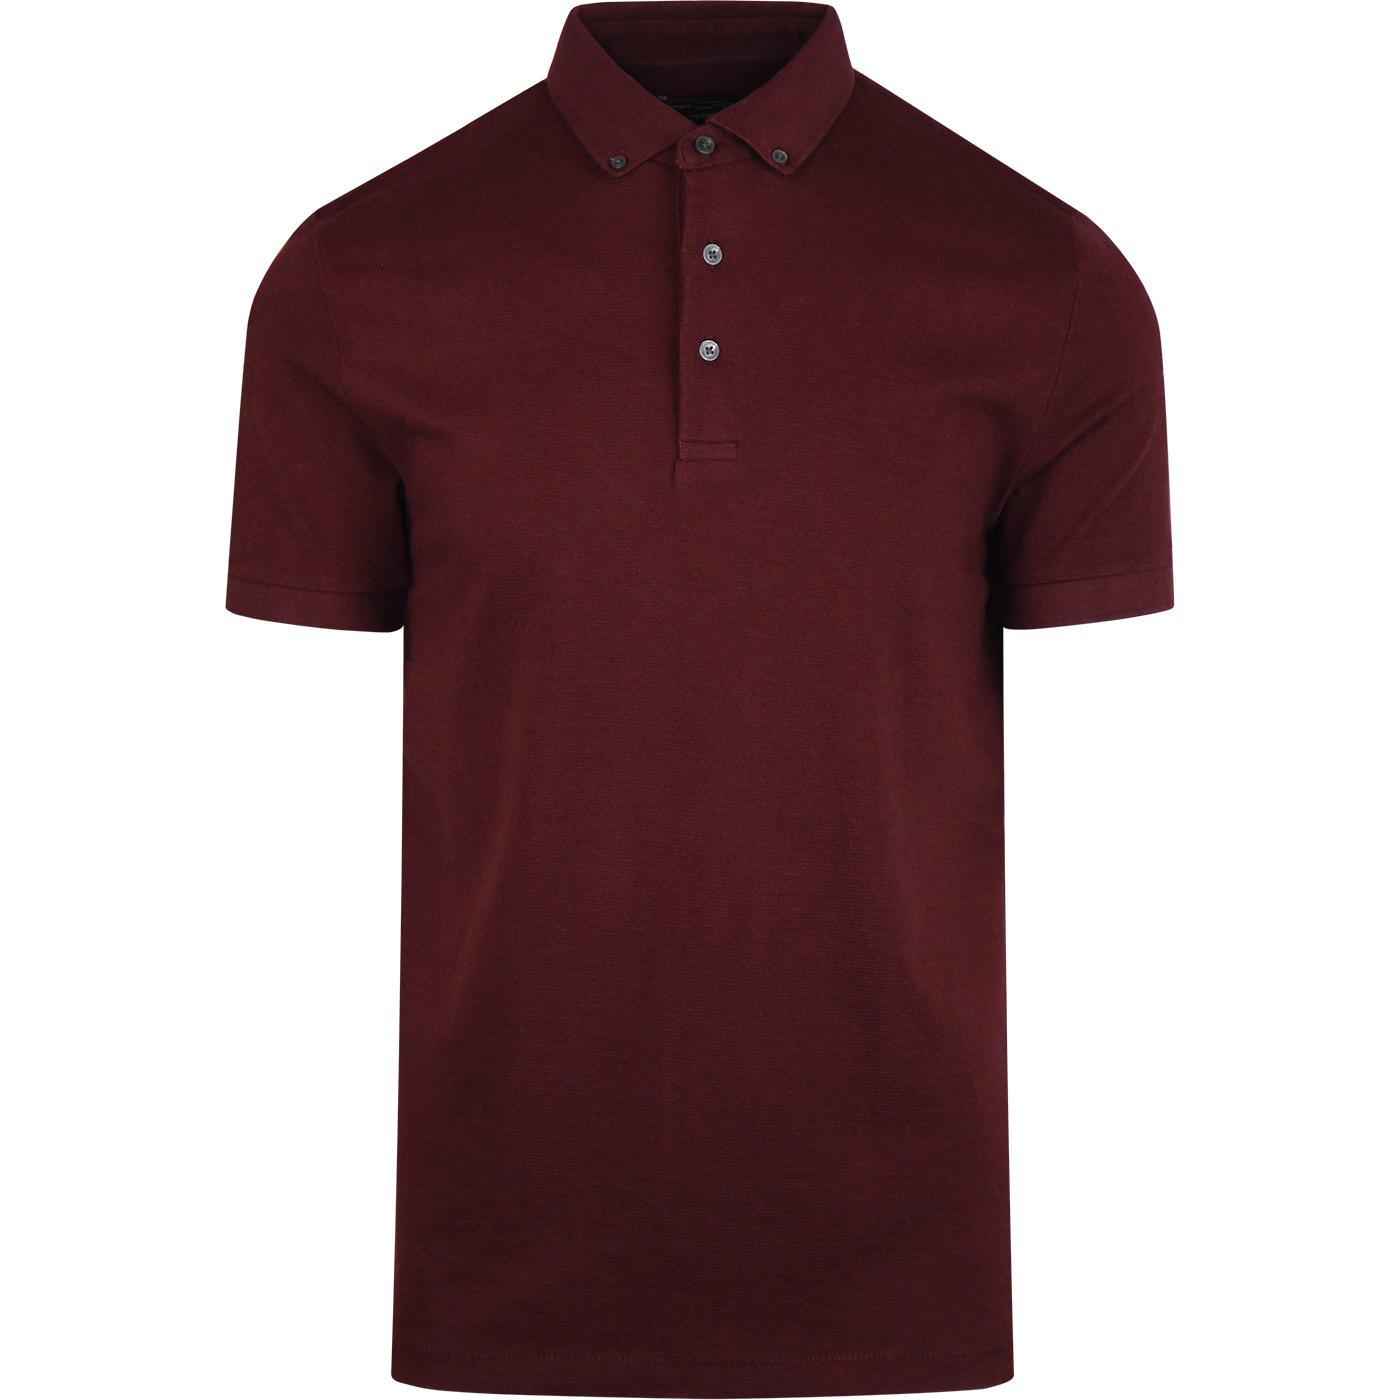 FRENCH CONNECTION Mod Parched Textured Polo BORDO